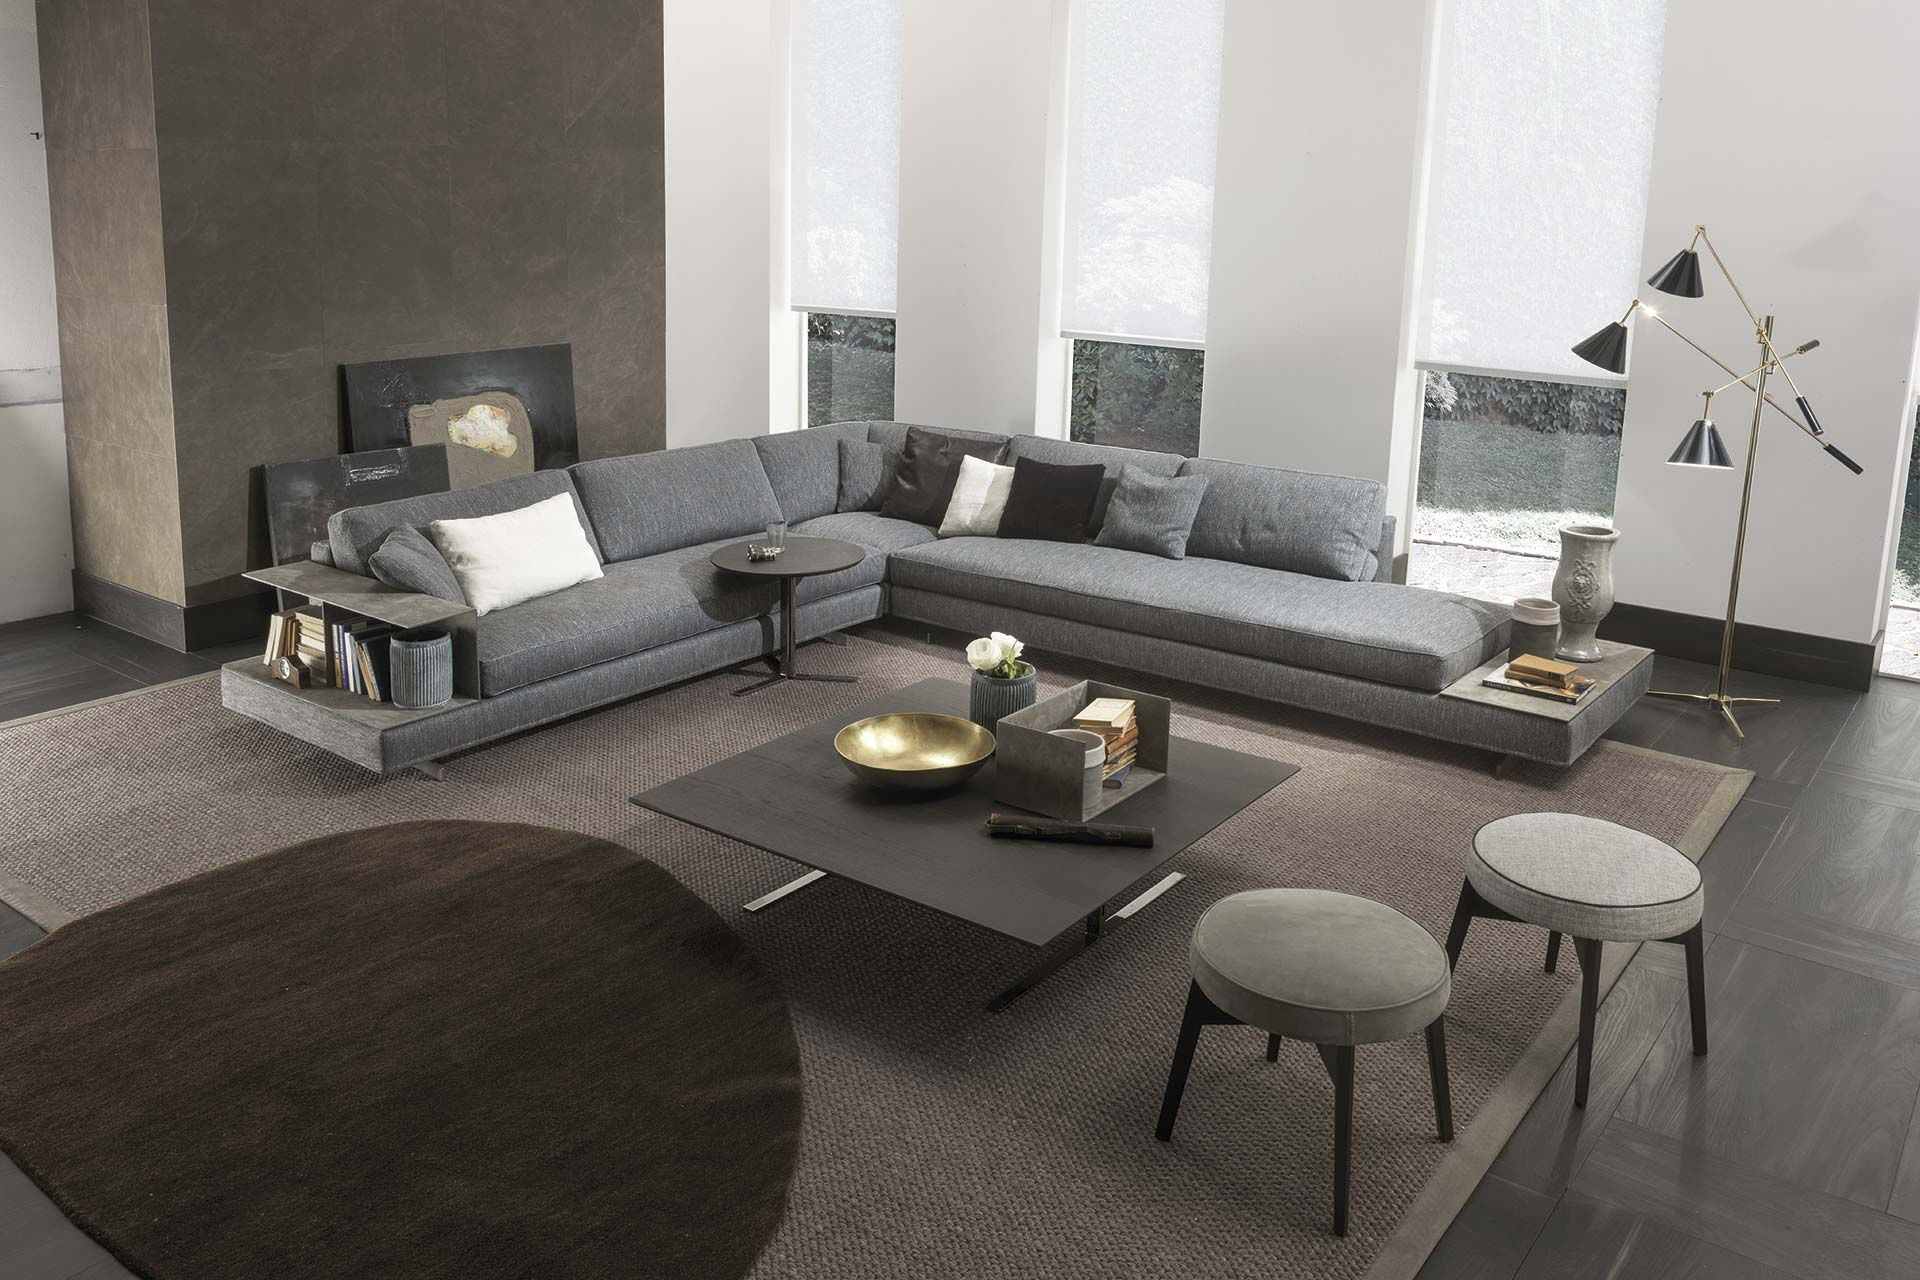 Marvelous Modular Sofa Contemporary Fabric Leather Davis Case Gmtry Best Dining Table And Chair Ideas Images Gmtryco